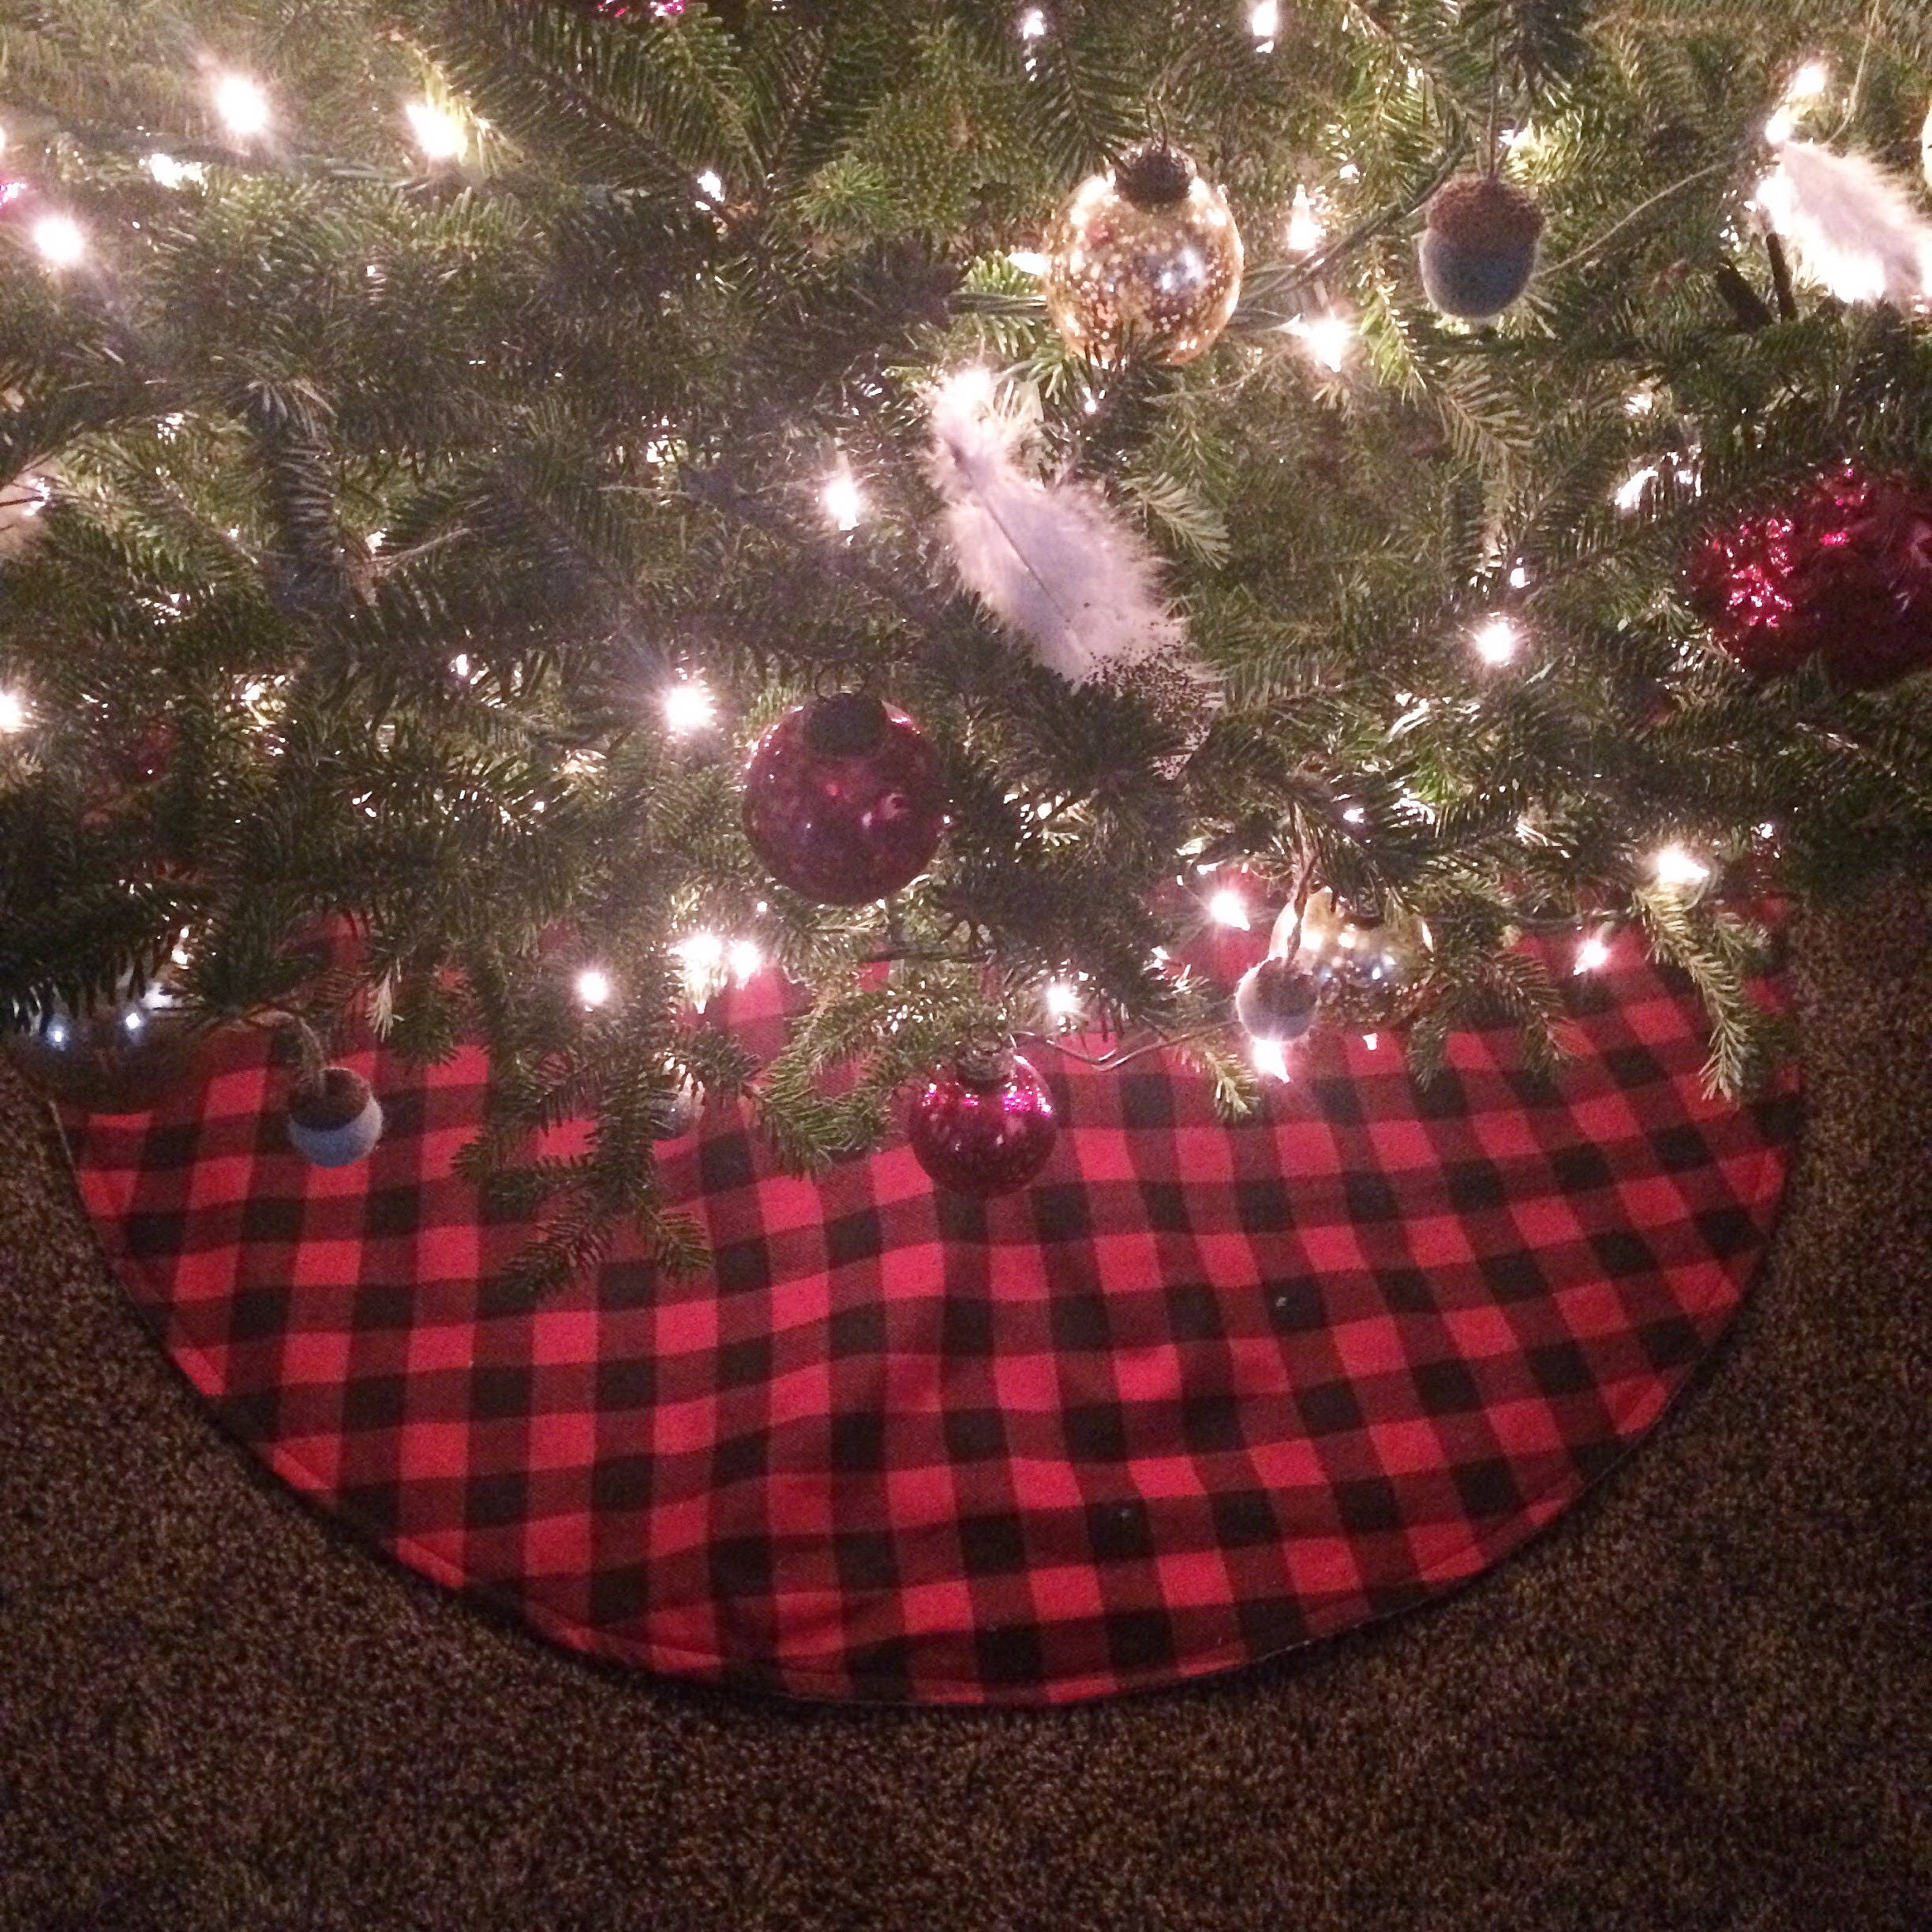 40 buffalo plaid natural burlap tree skirt redblack check cotton flannel christmas woodland cabinfarmhouse decor rustic chic